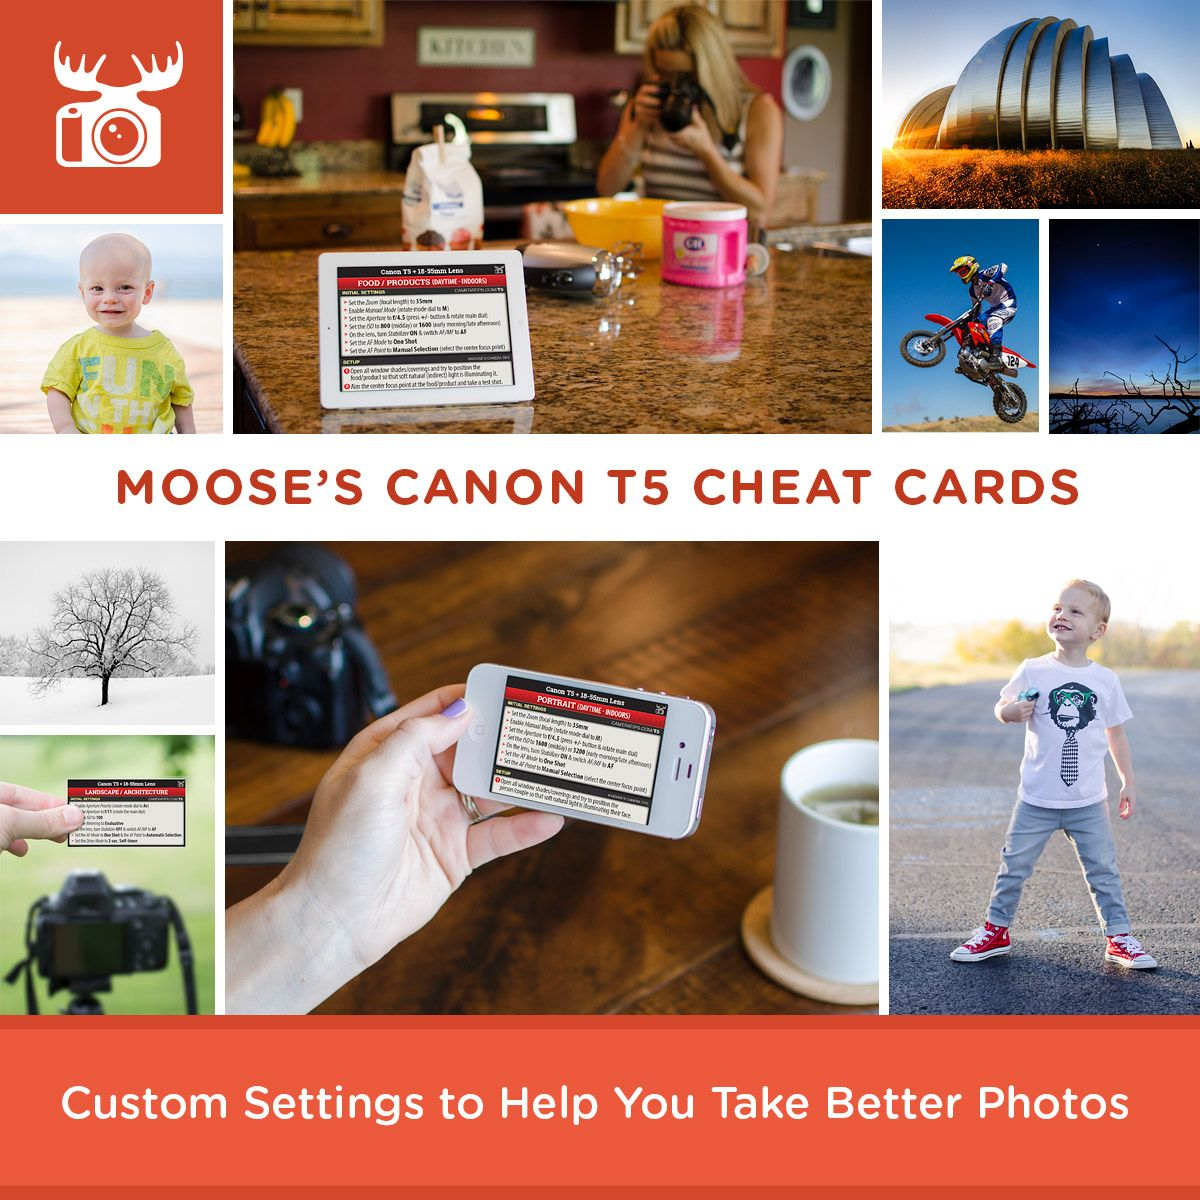 Moose's Canon T5 / 1200D Cheat Sheets for Beginners | canon tips